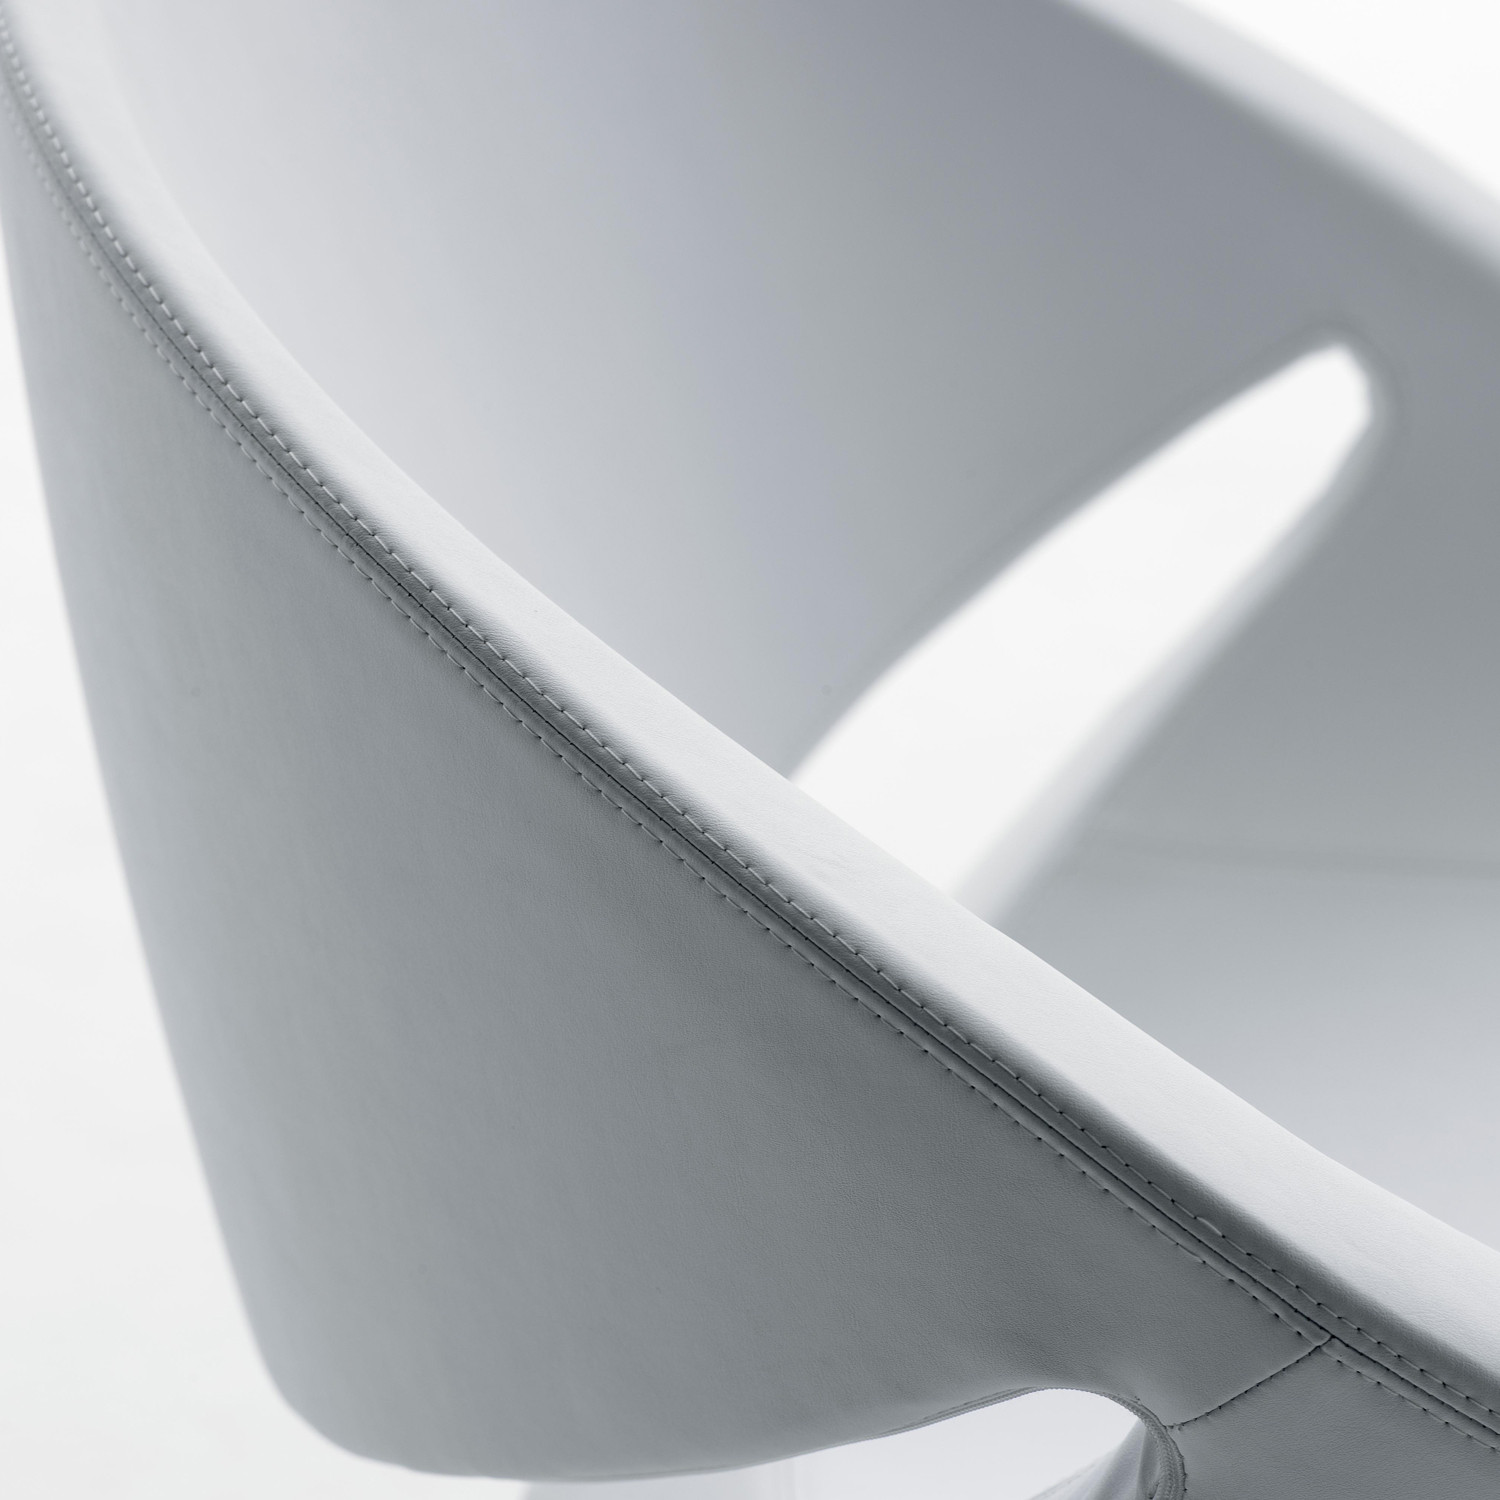 Mya Chair leather upholstery detail